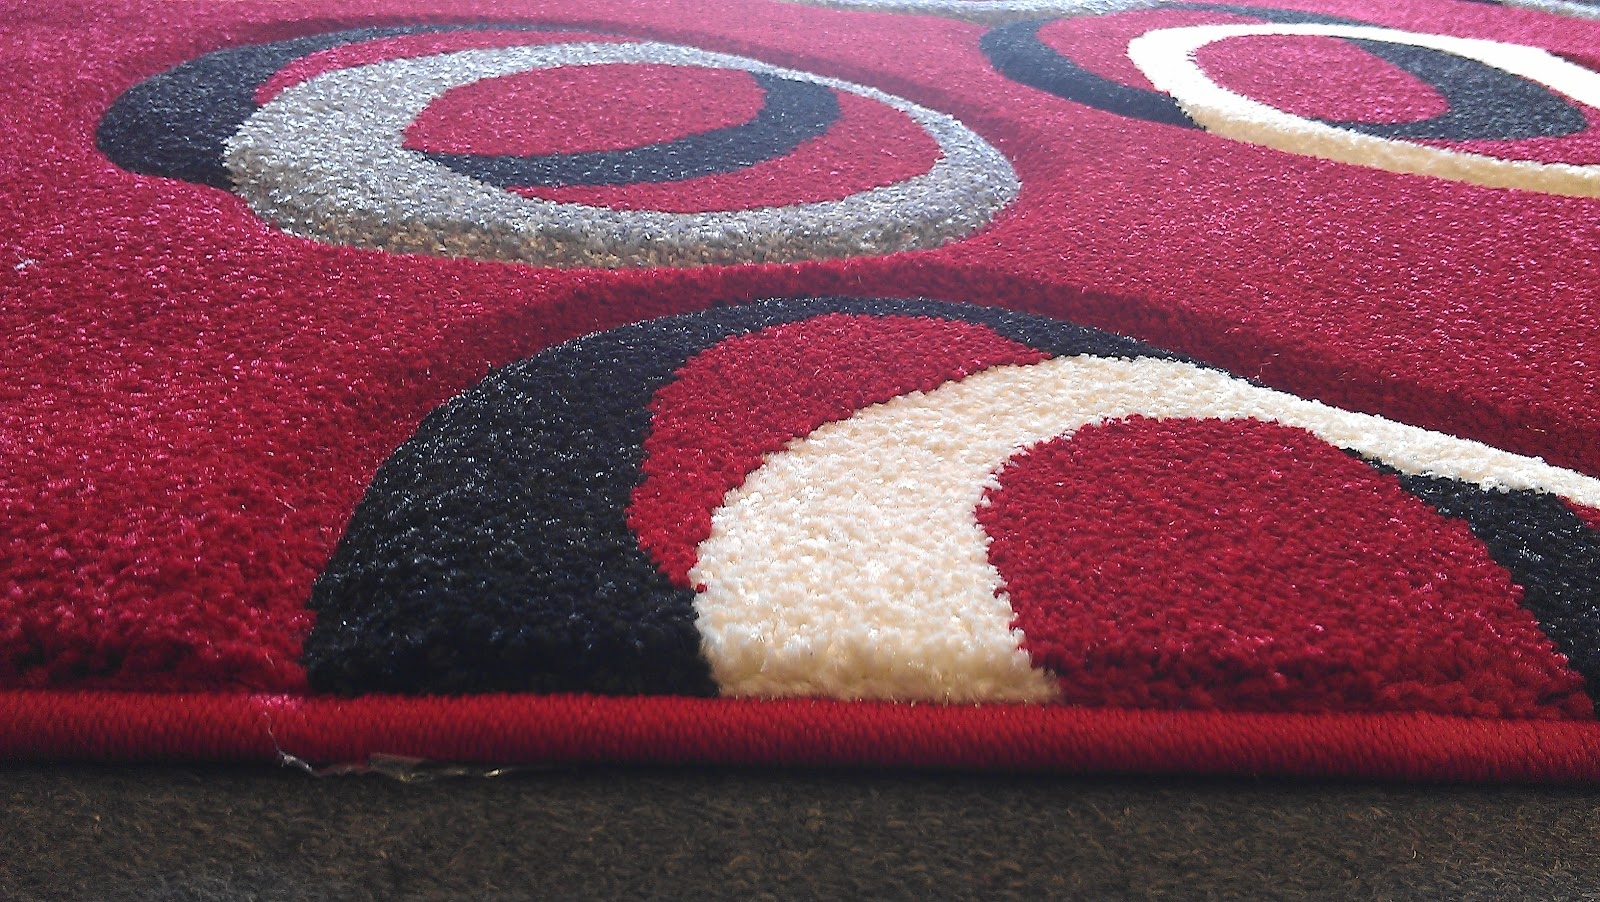 large area rug red black white grey circles 5ft 2in x 7ft 2 in free shipping ebay. Black Bedroom Furniture Sets. Home Design Ideas